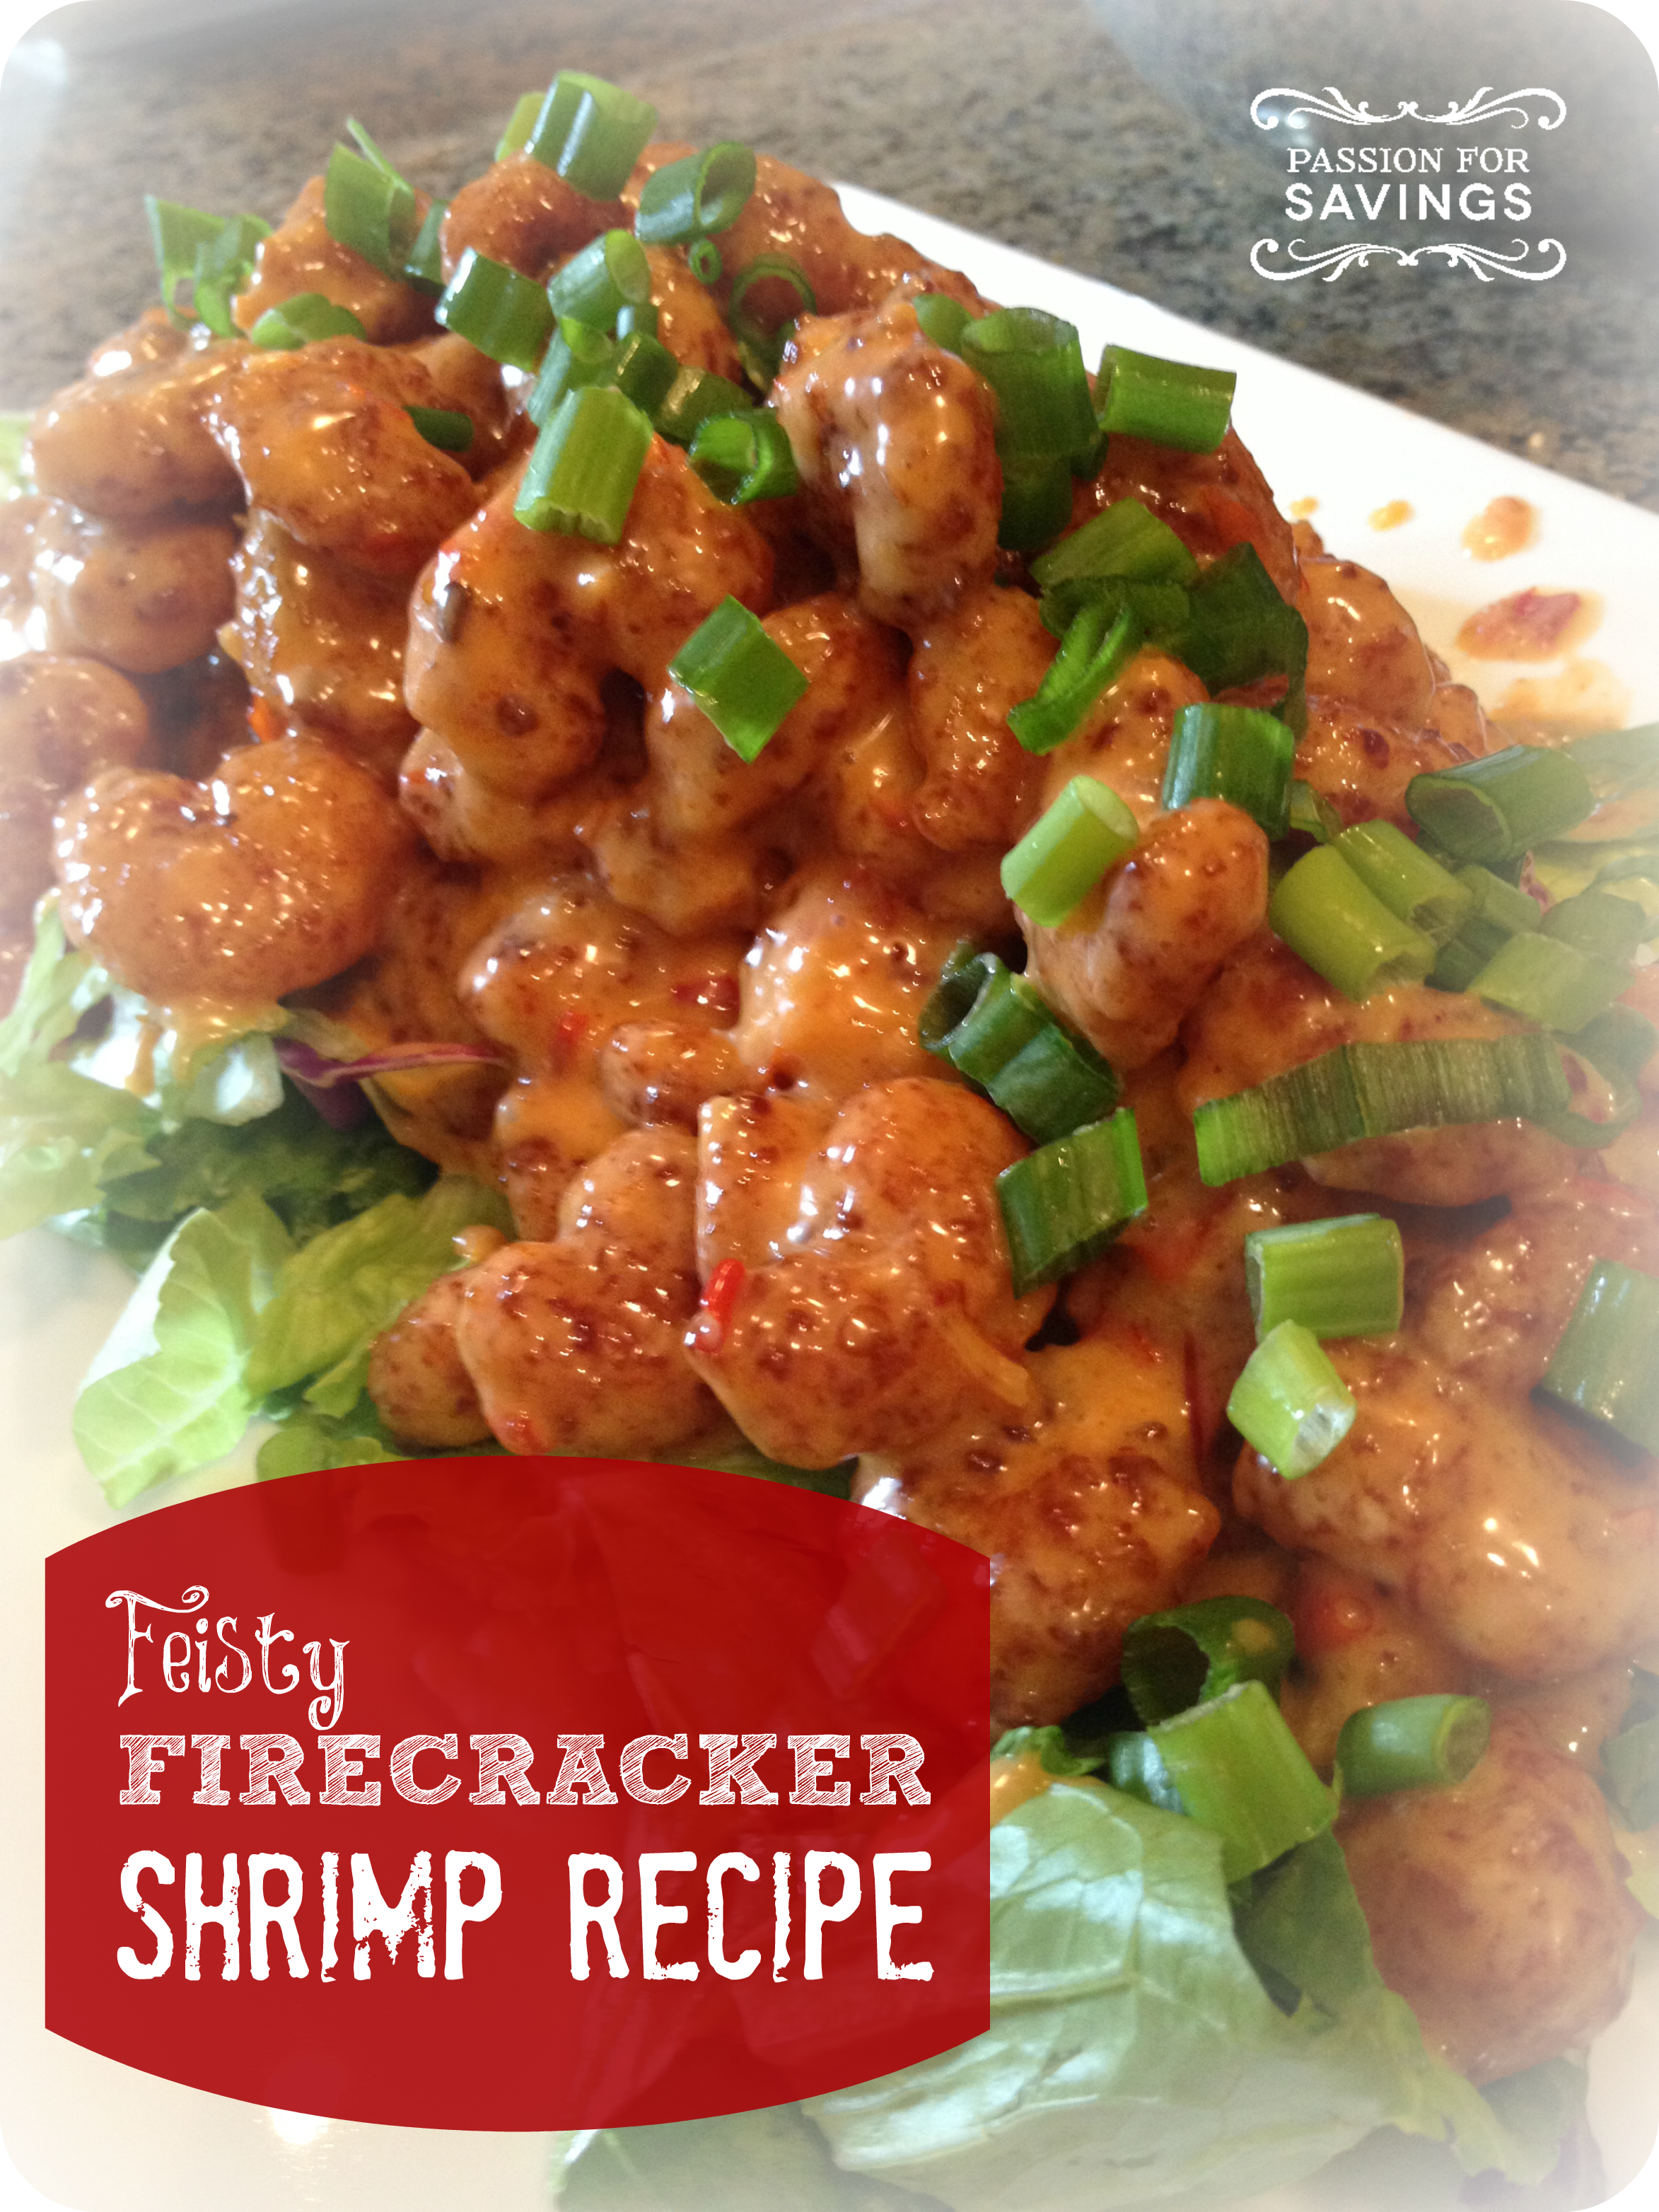 Firecracker shrimp recipe